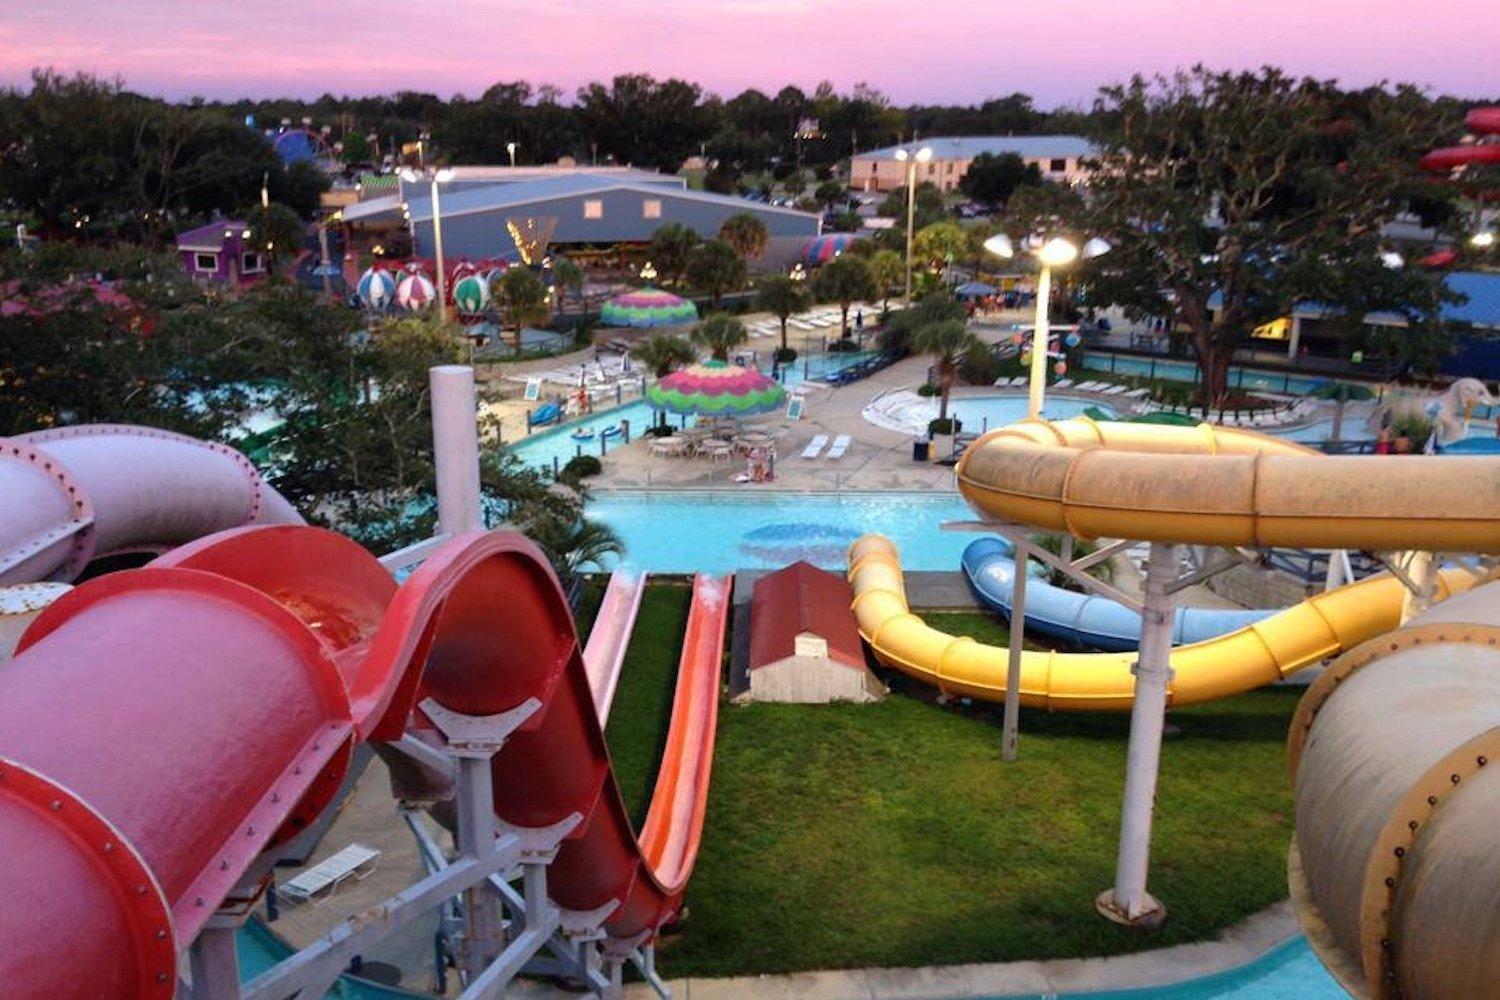 10 Fashionable Family Vacation Ideas In Florida fun things to do with kids in florida on familydaysout 2021